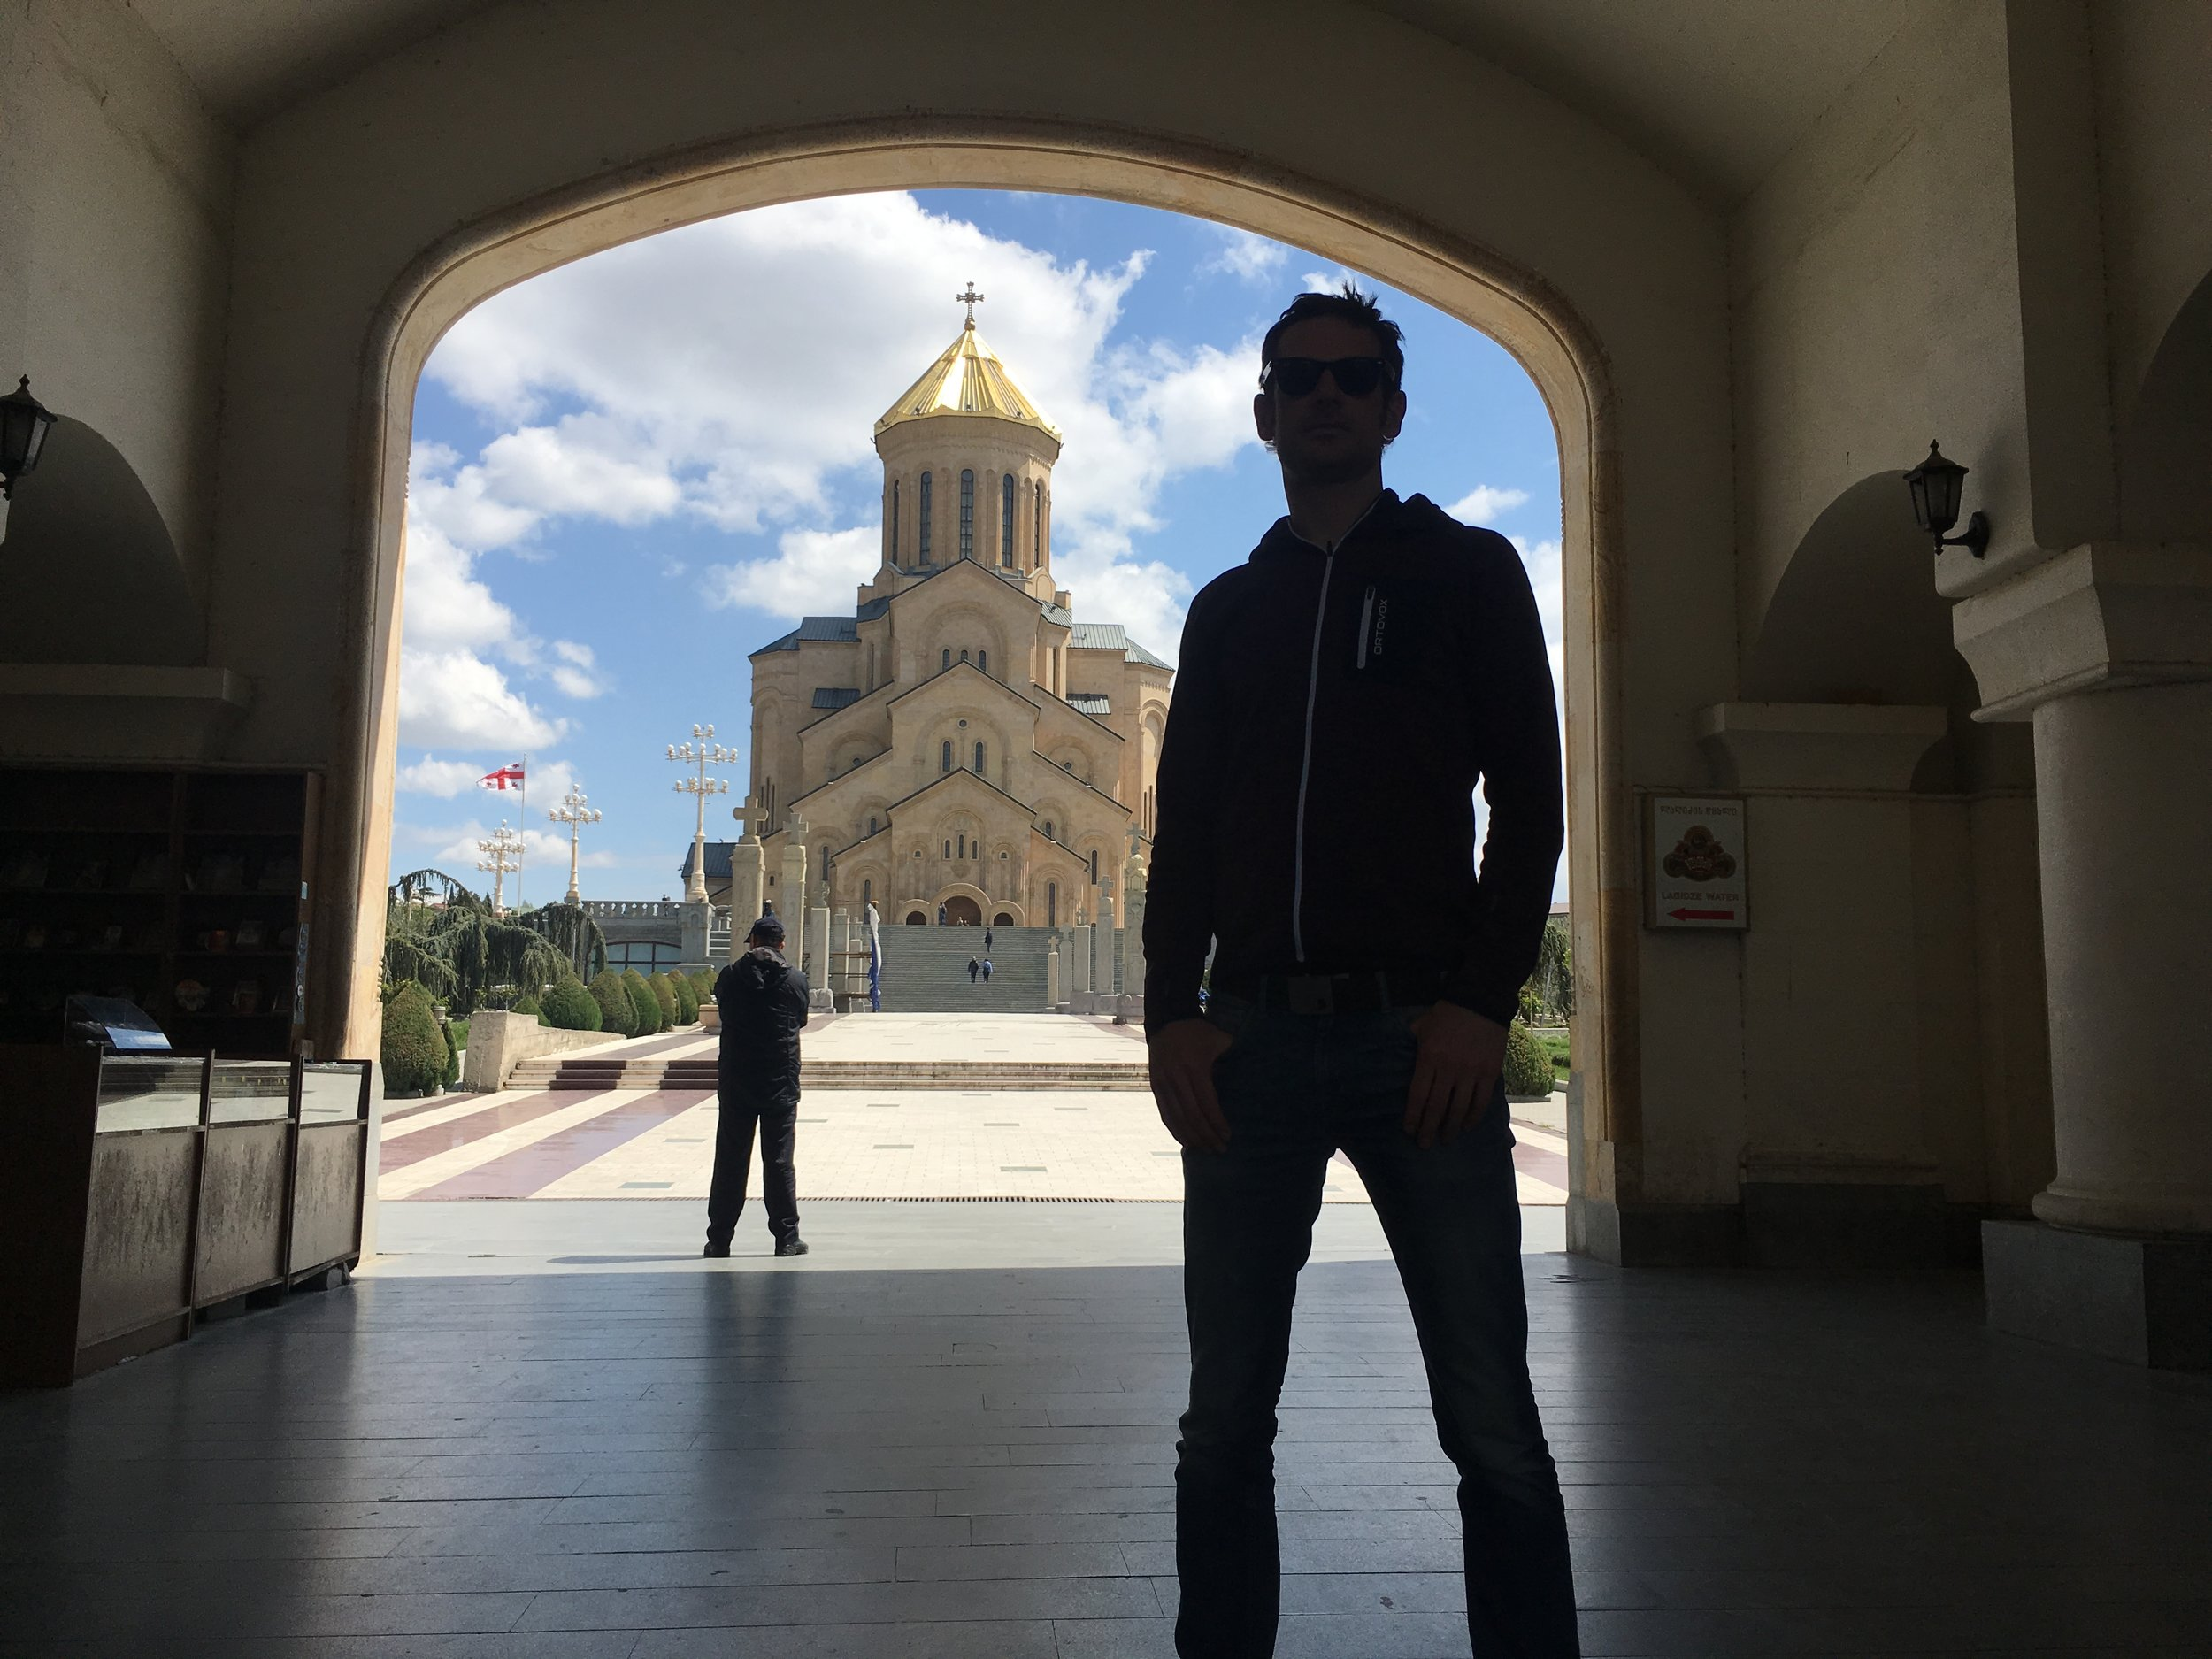 The trinity of the Holy Trinity Cathedral of Tbilisi, a security man and Thies.